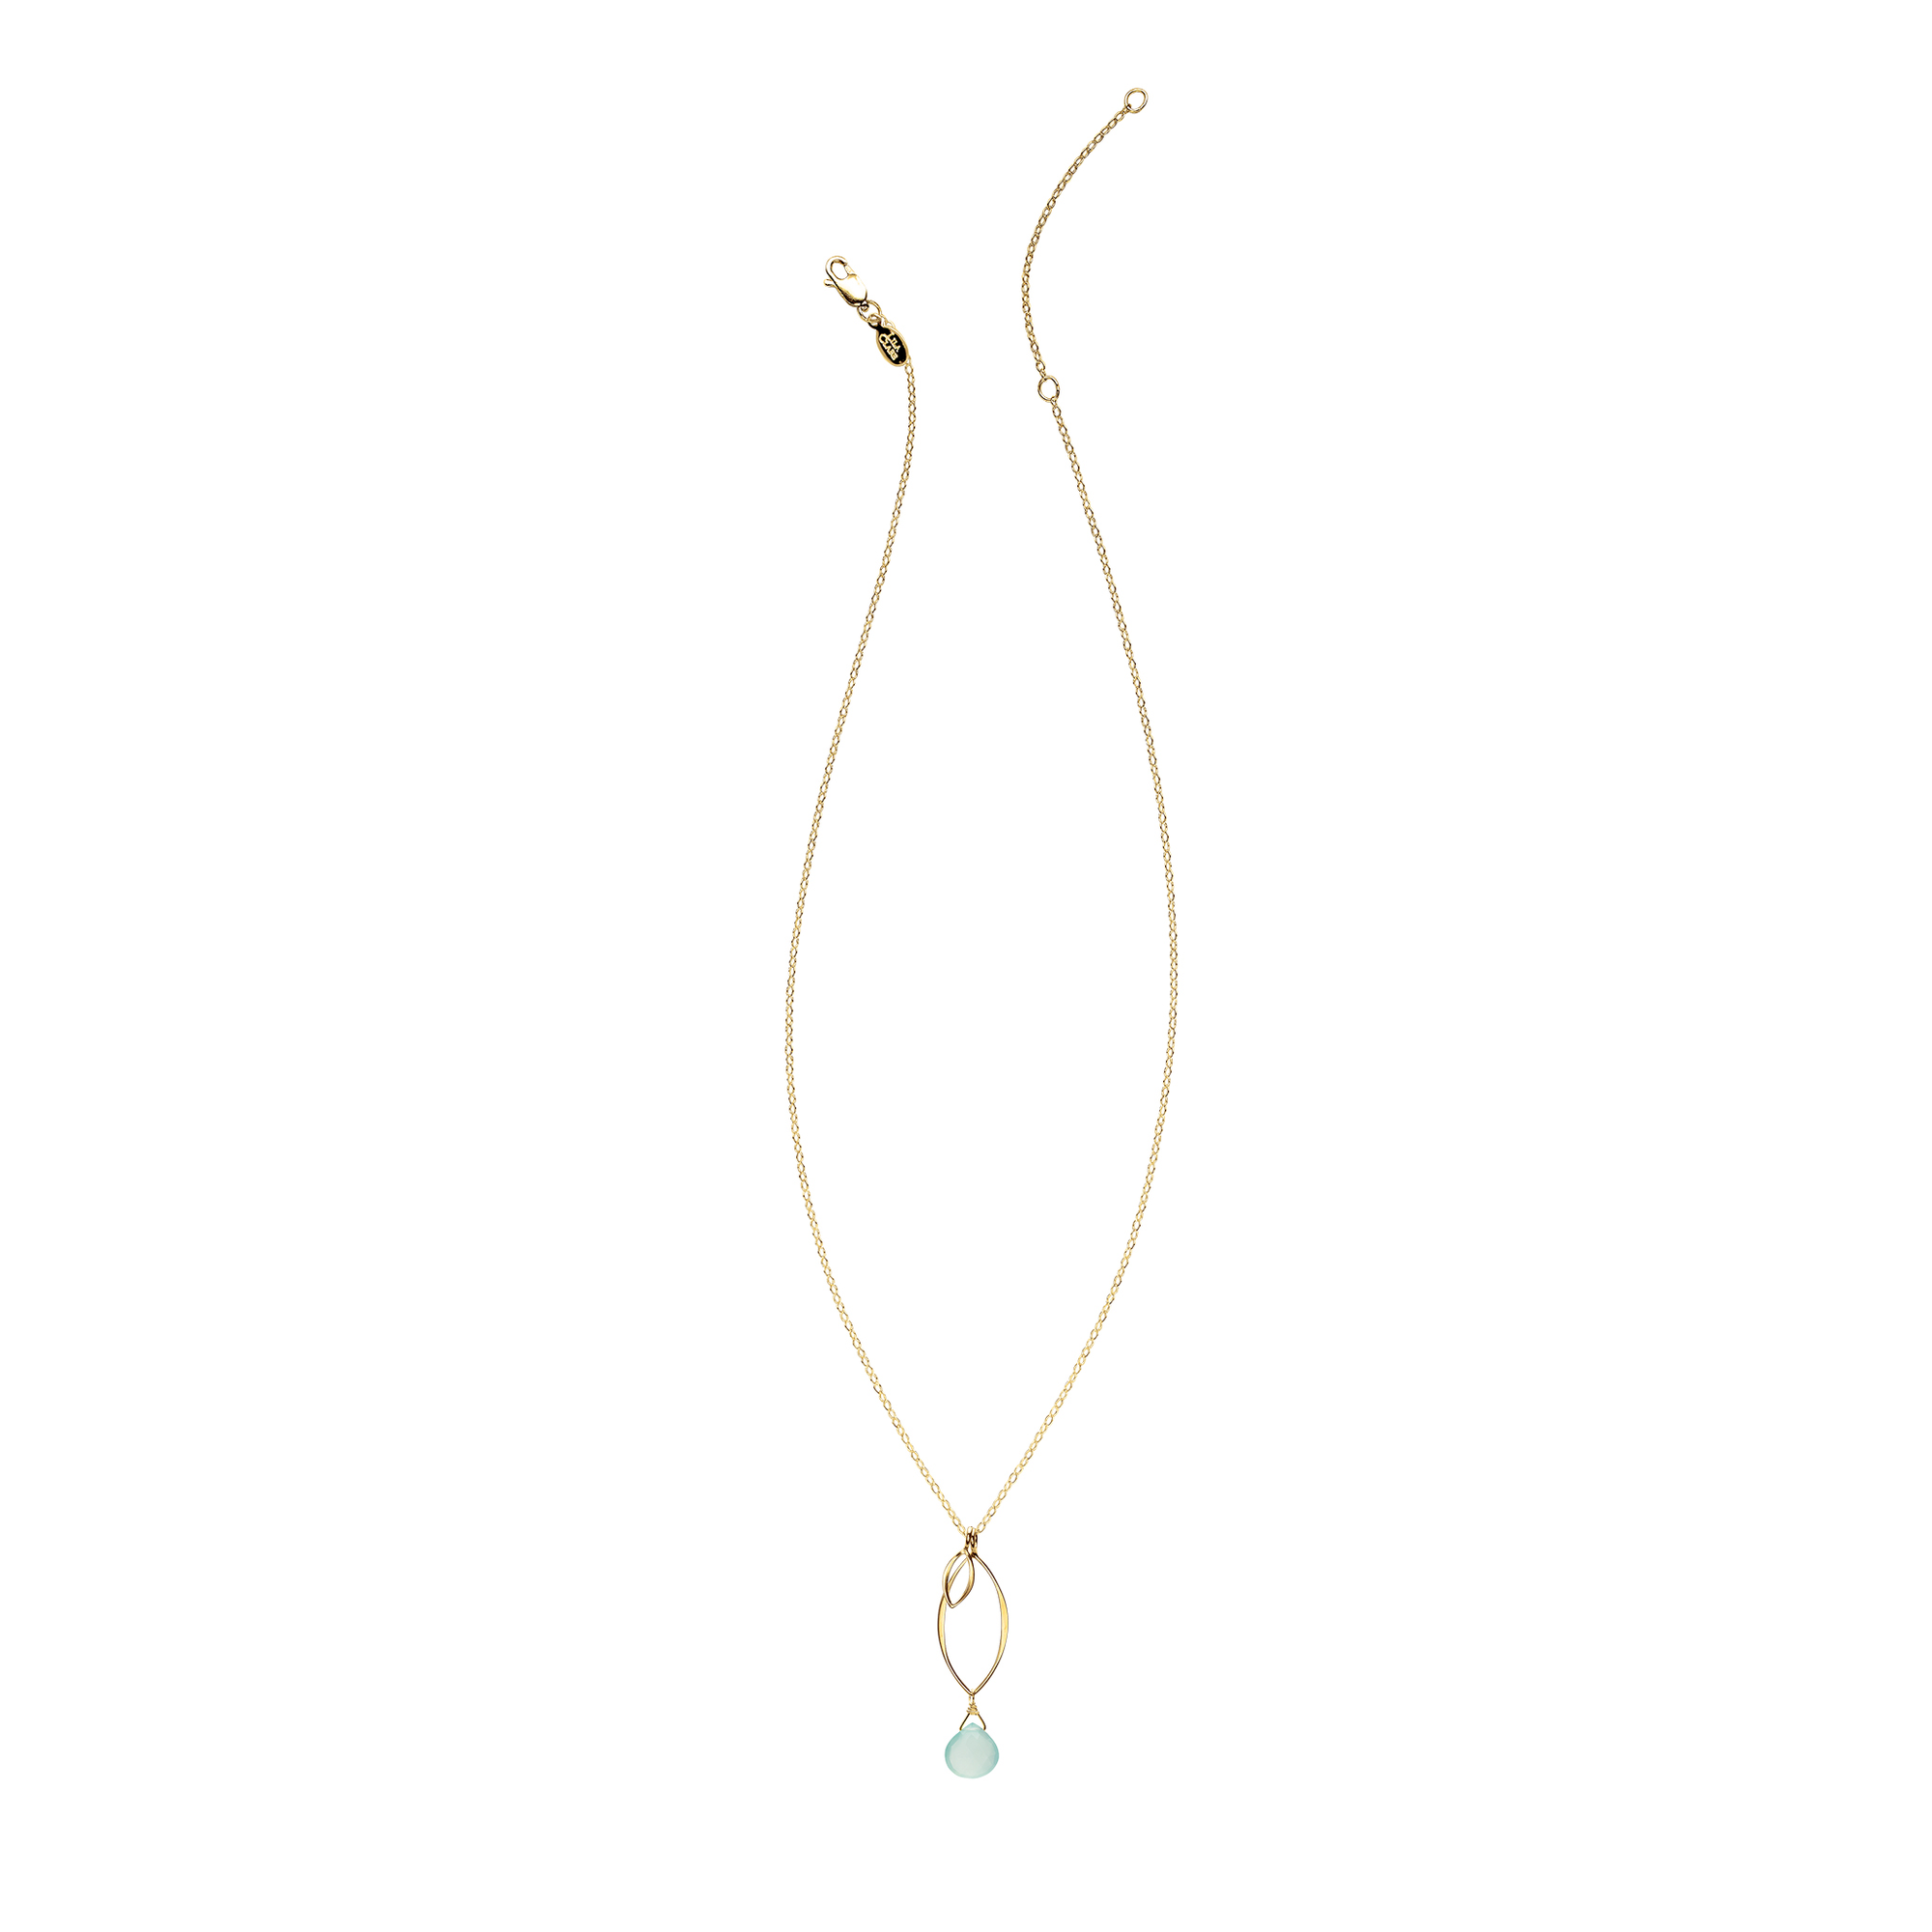 Ella Gold Small Leaf Fringe Necklace with Gemstone